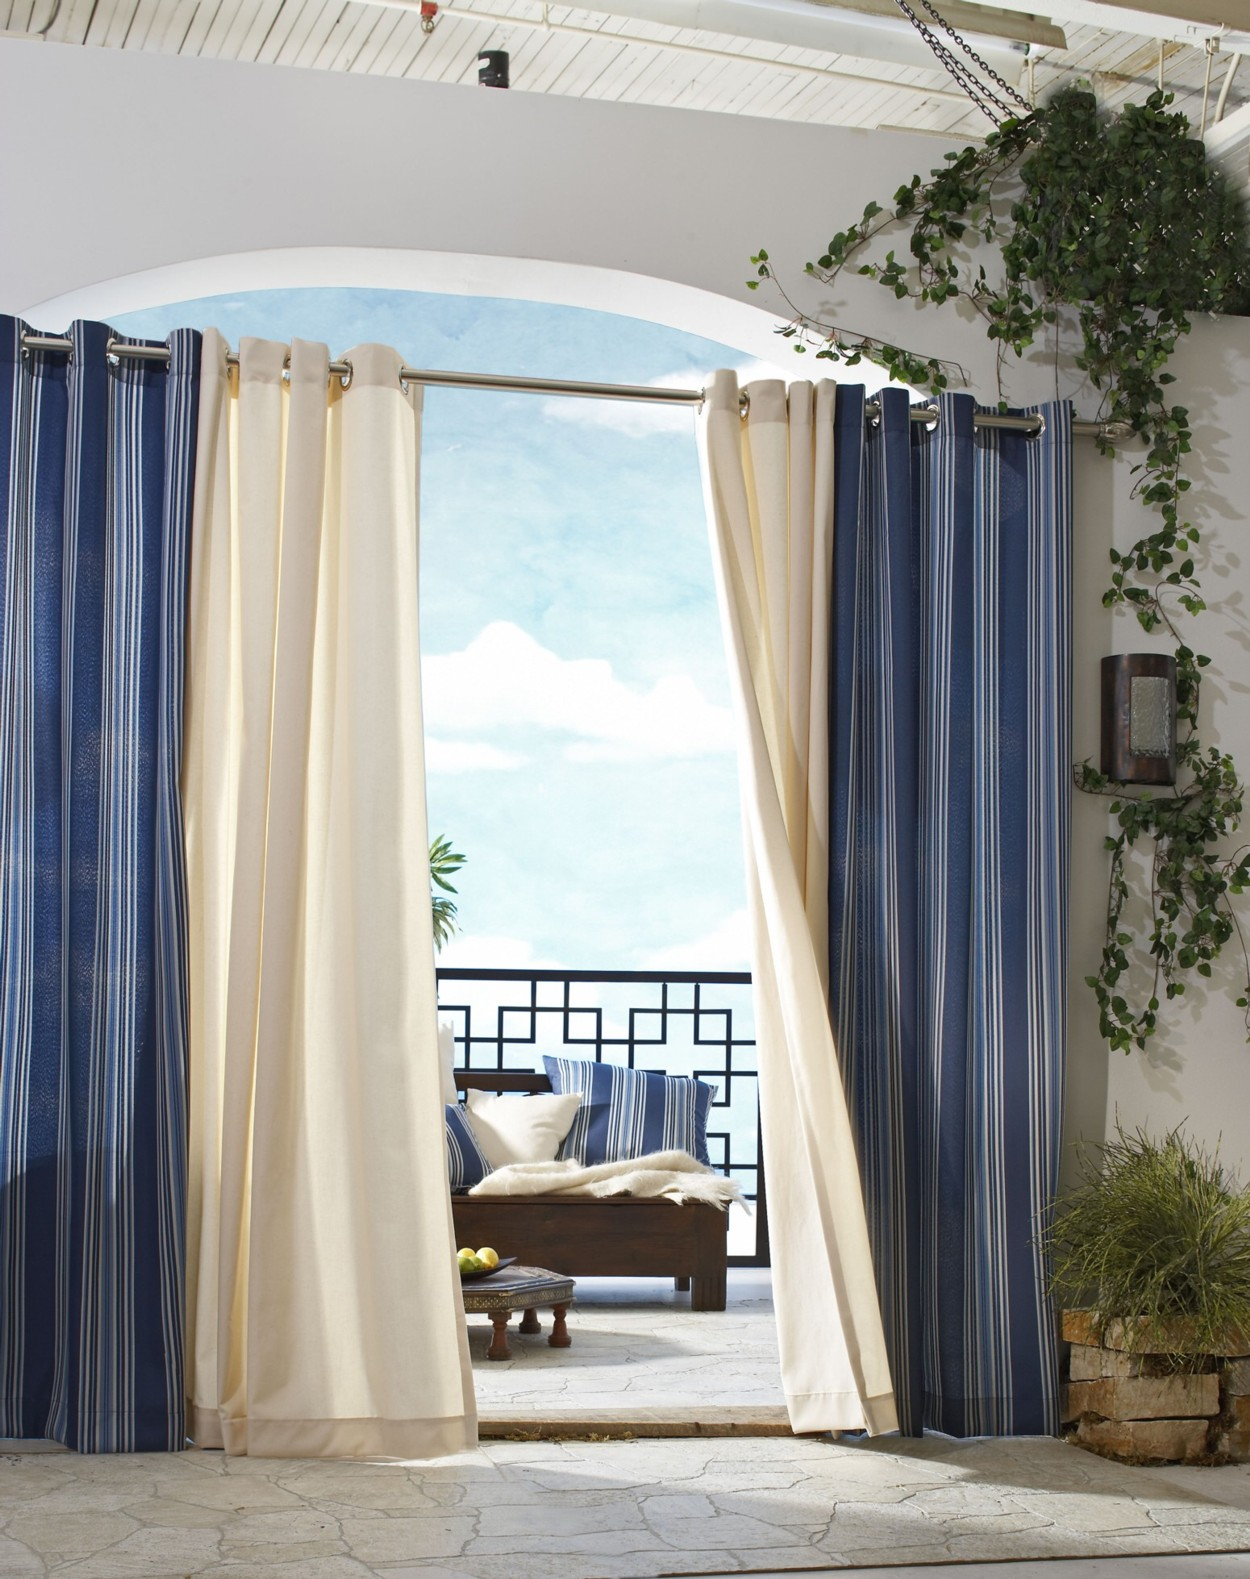 sheer outdoor curxwsbggr beige curtain xx n wide dfohome curxwsbggrr sheerbeige curtains extra